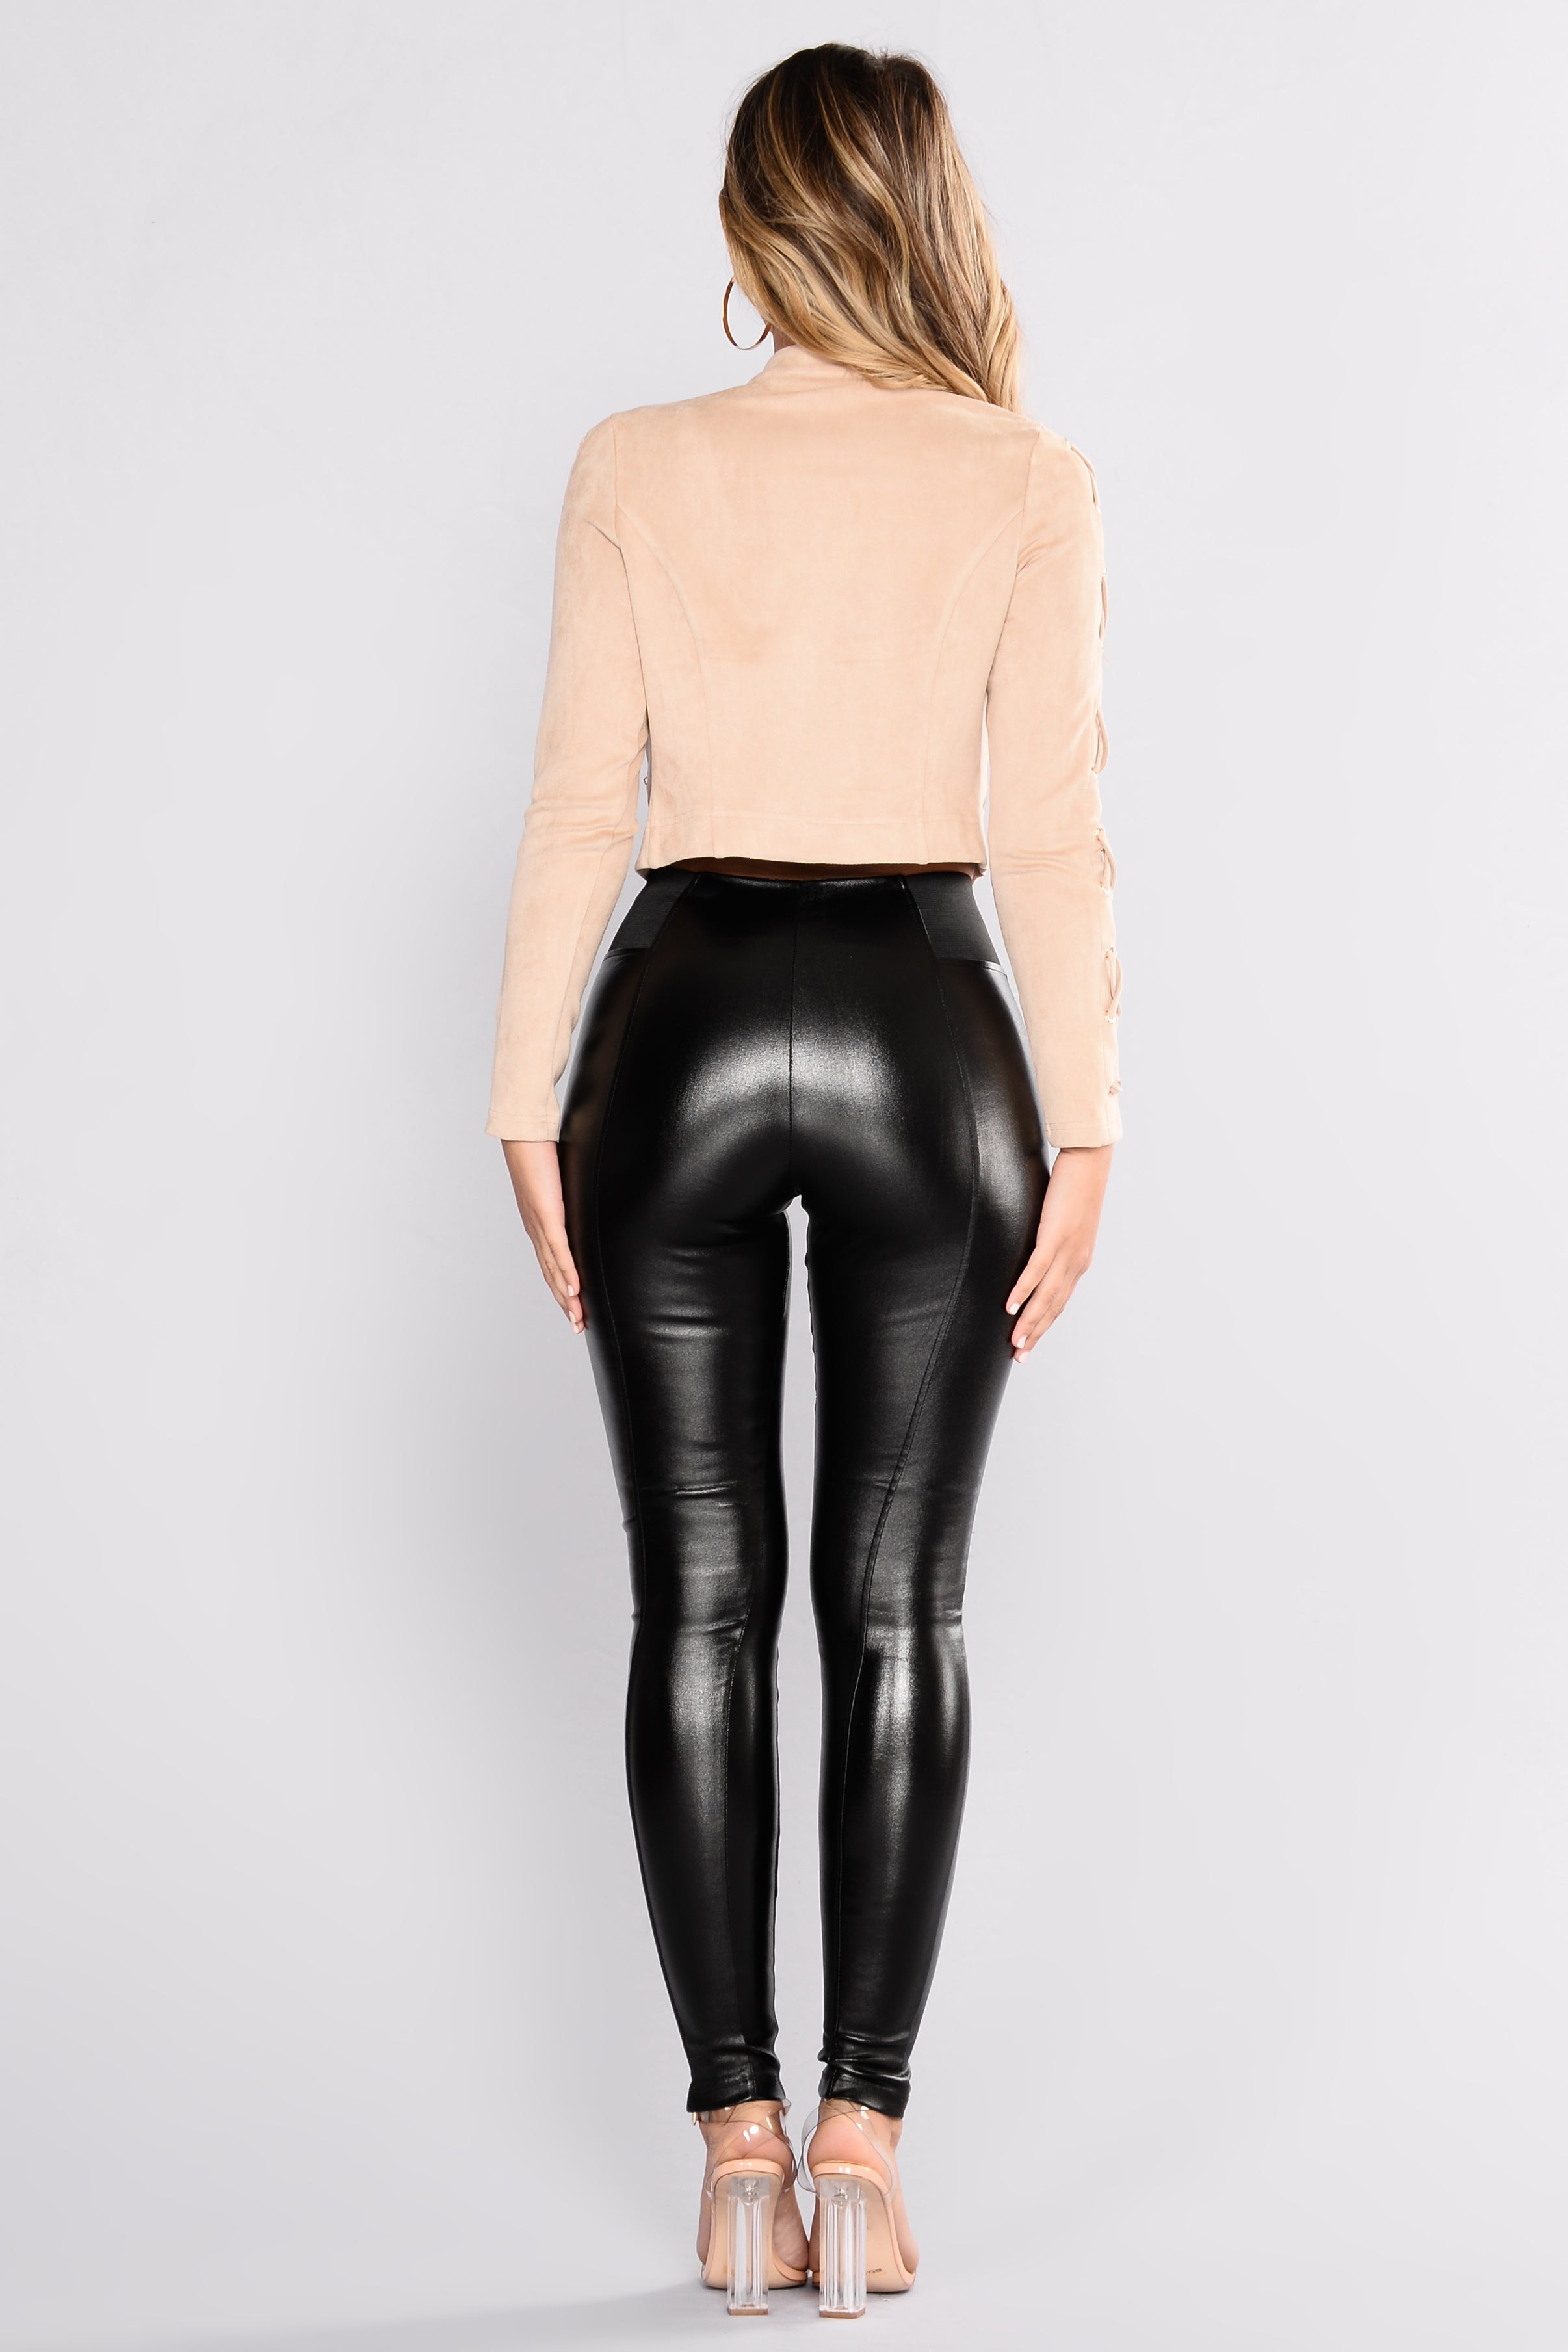 Apr 03,  · Born Pretty Store Black Stretch Faux Leather Leggings FREE SHIPPING & 10% DISCOUNT CODE USE HXBQ10 Link to item exploreblogirvd.gq